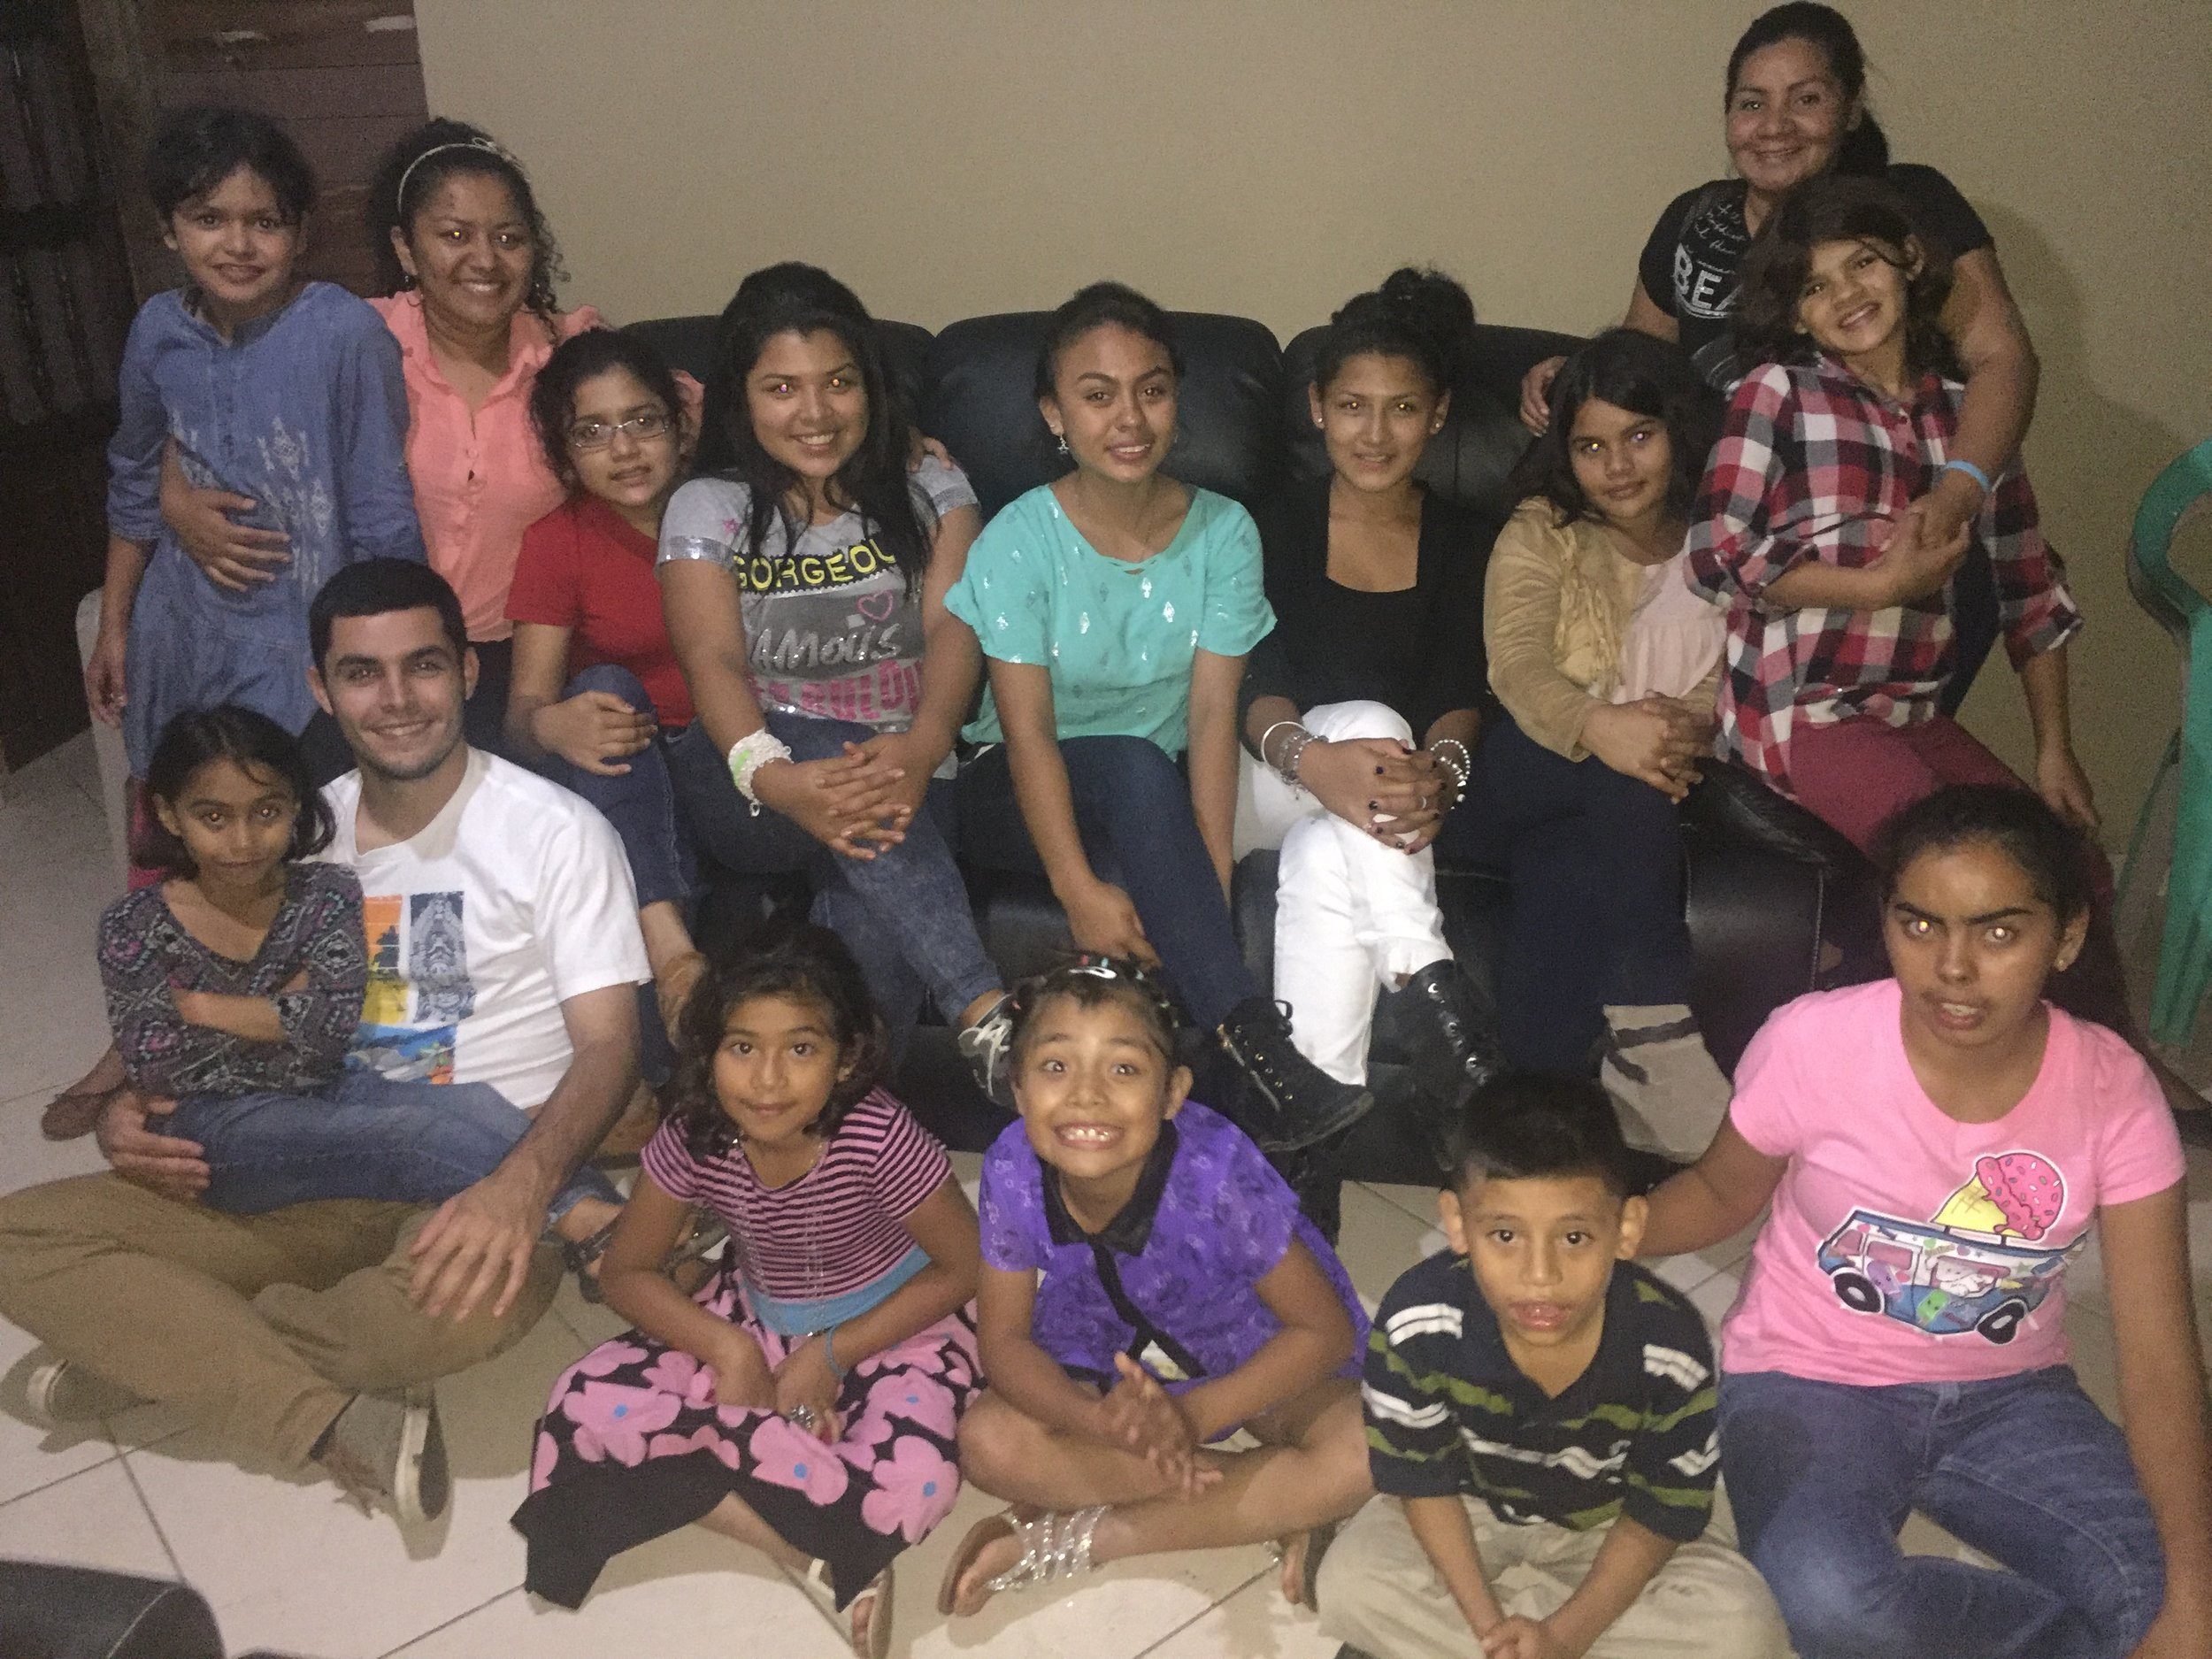 Mr. Zack with the girls and 'madrinas' of 'hogar' 1.